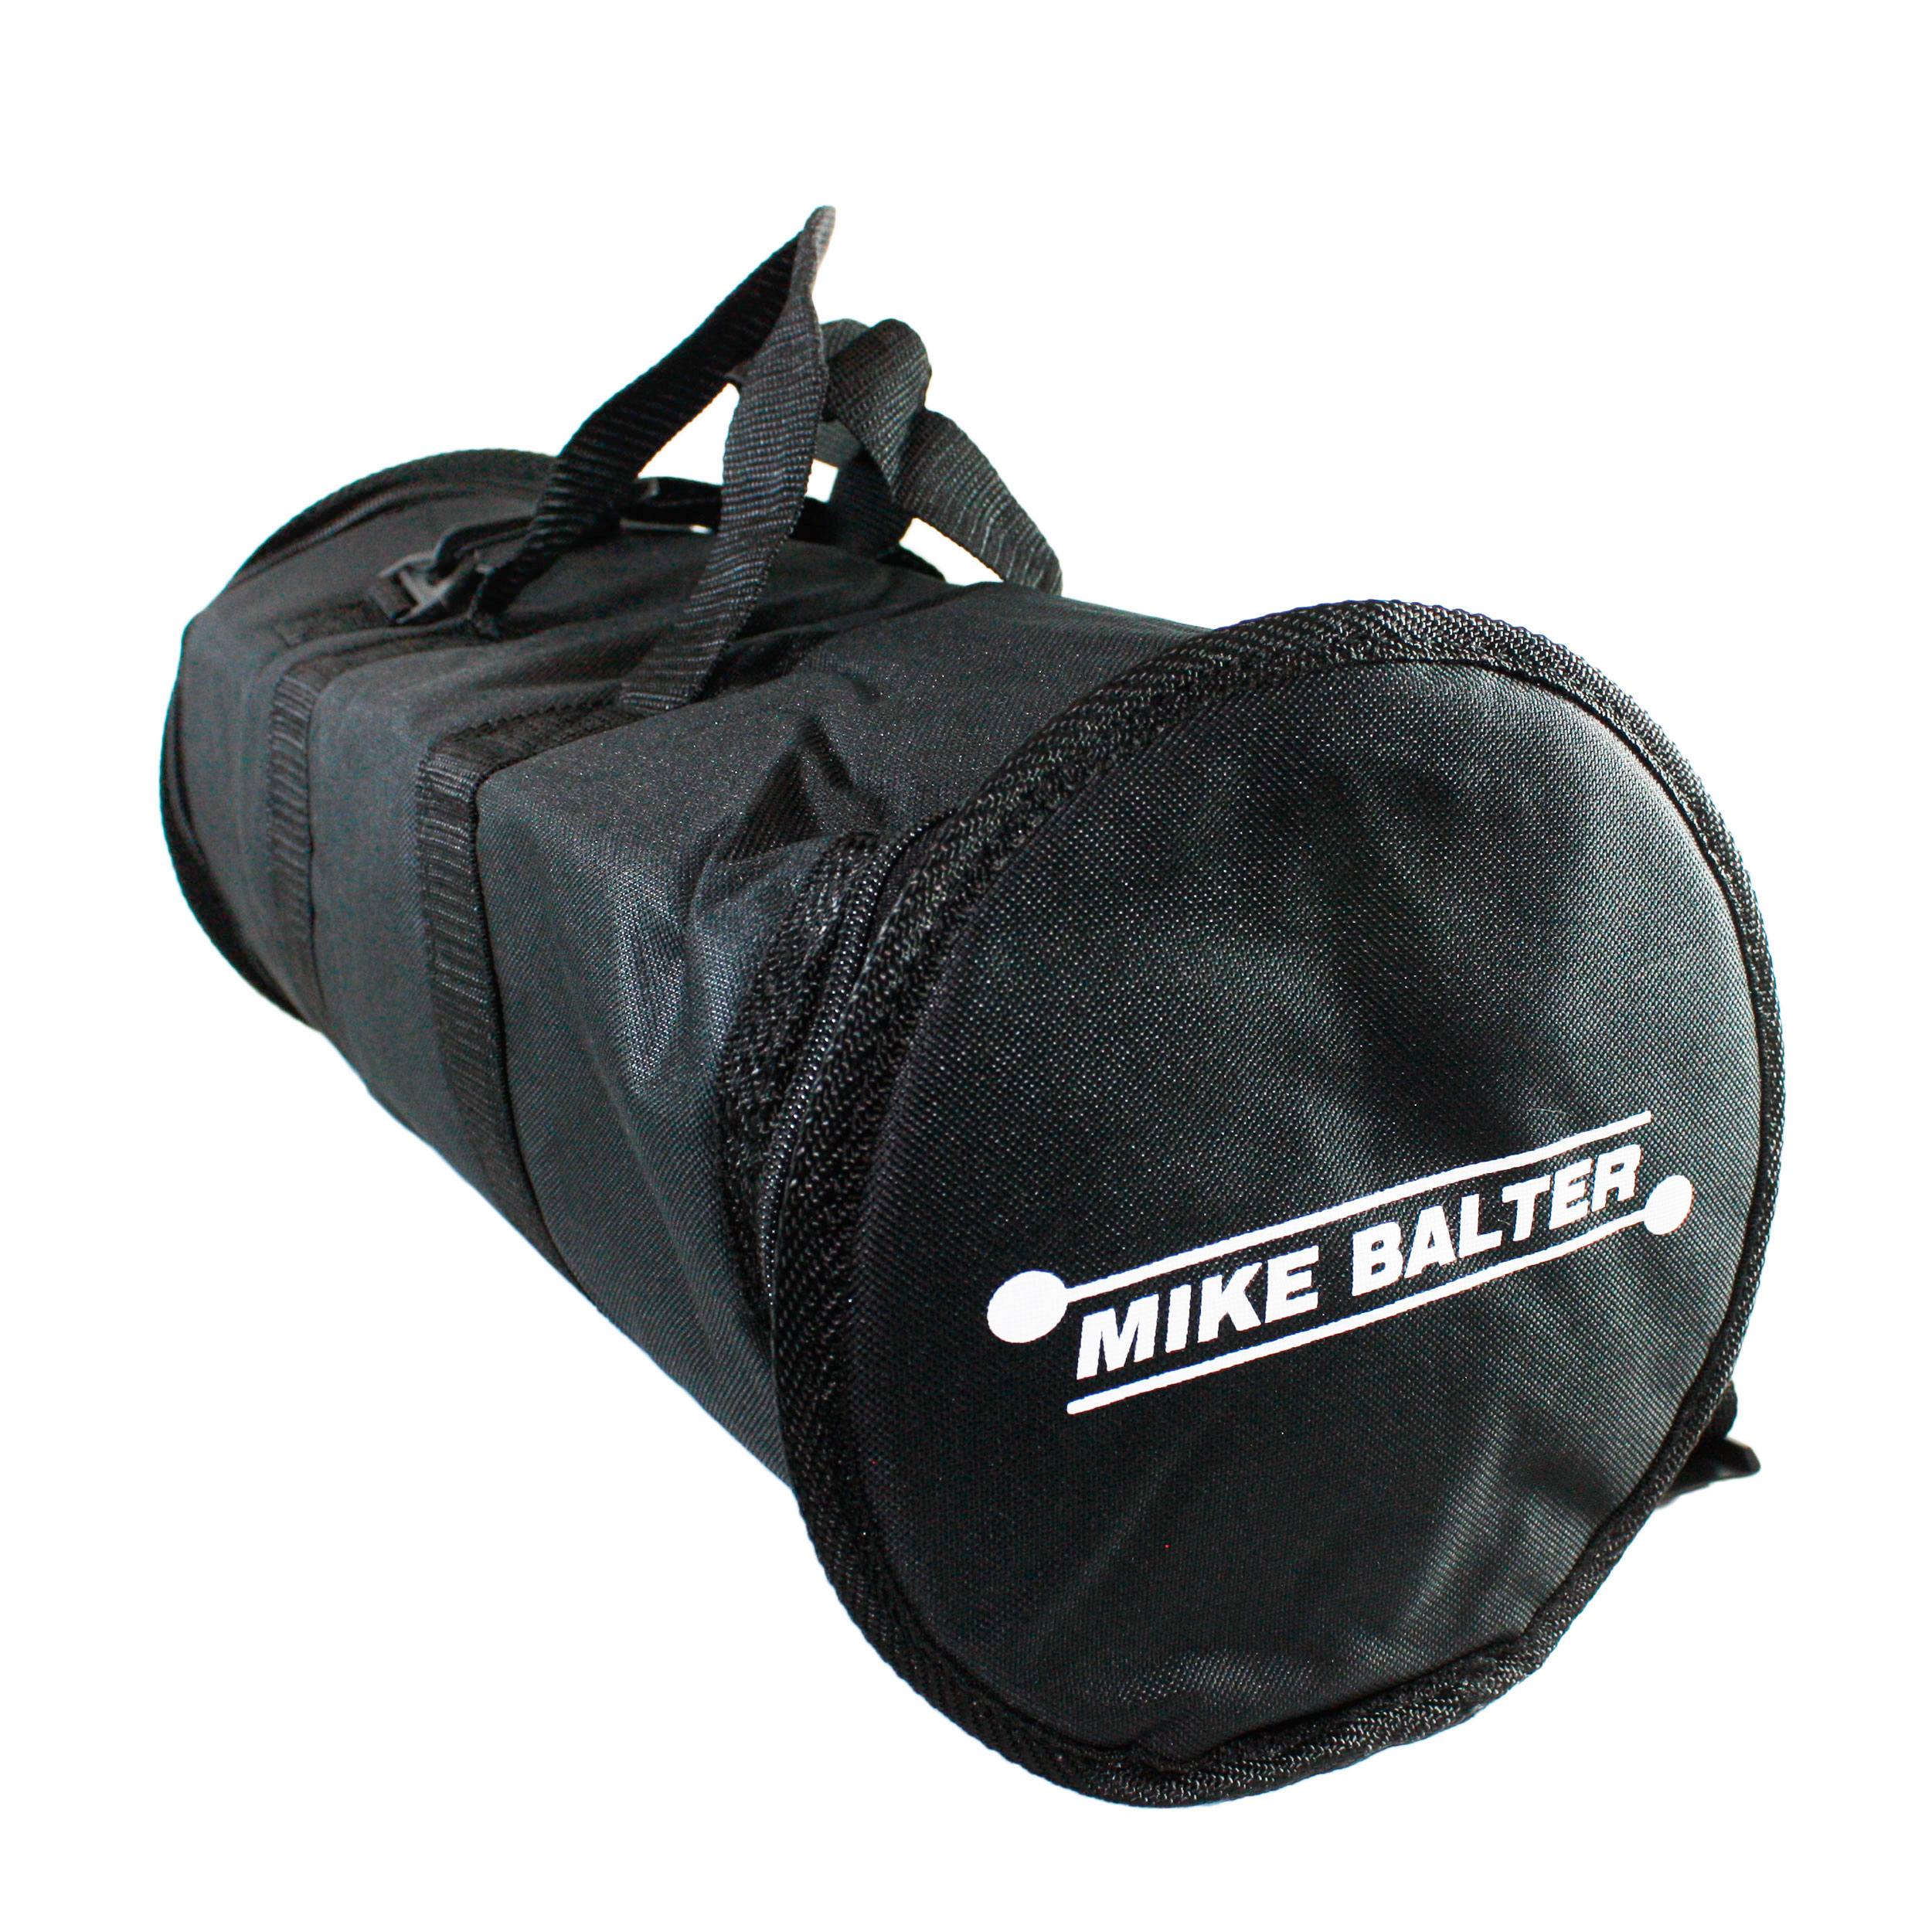 Mike Balter Barrel-Style Mallet Bag